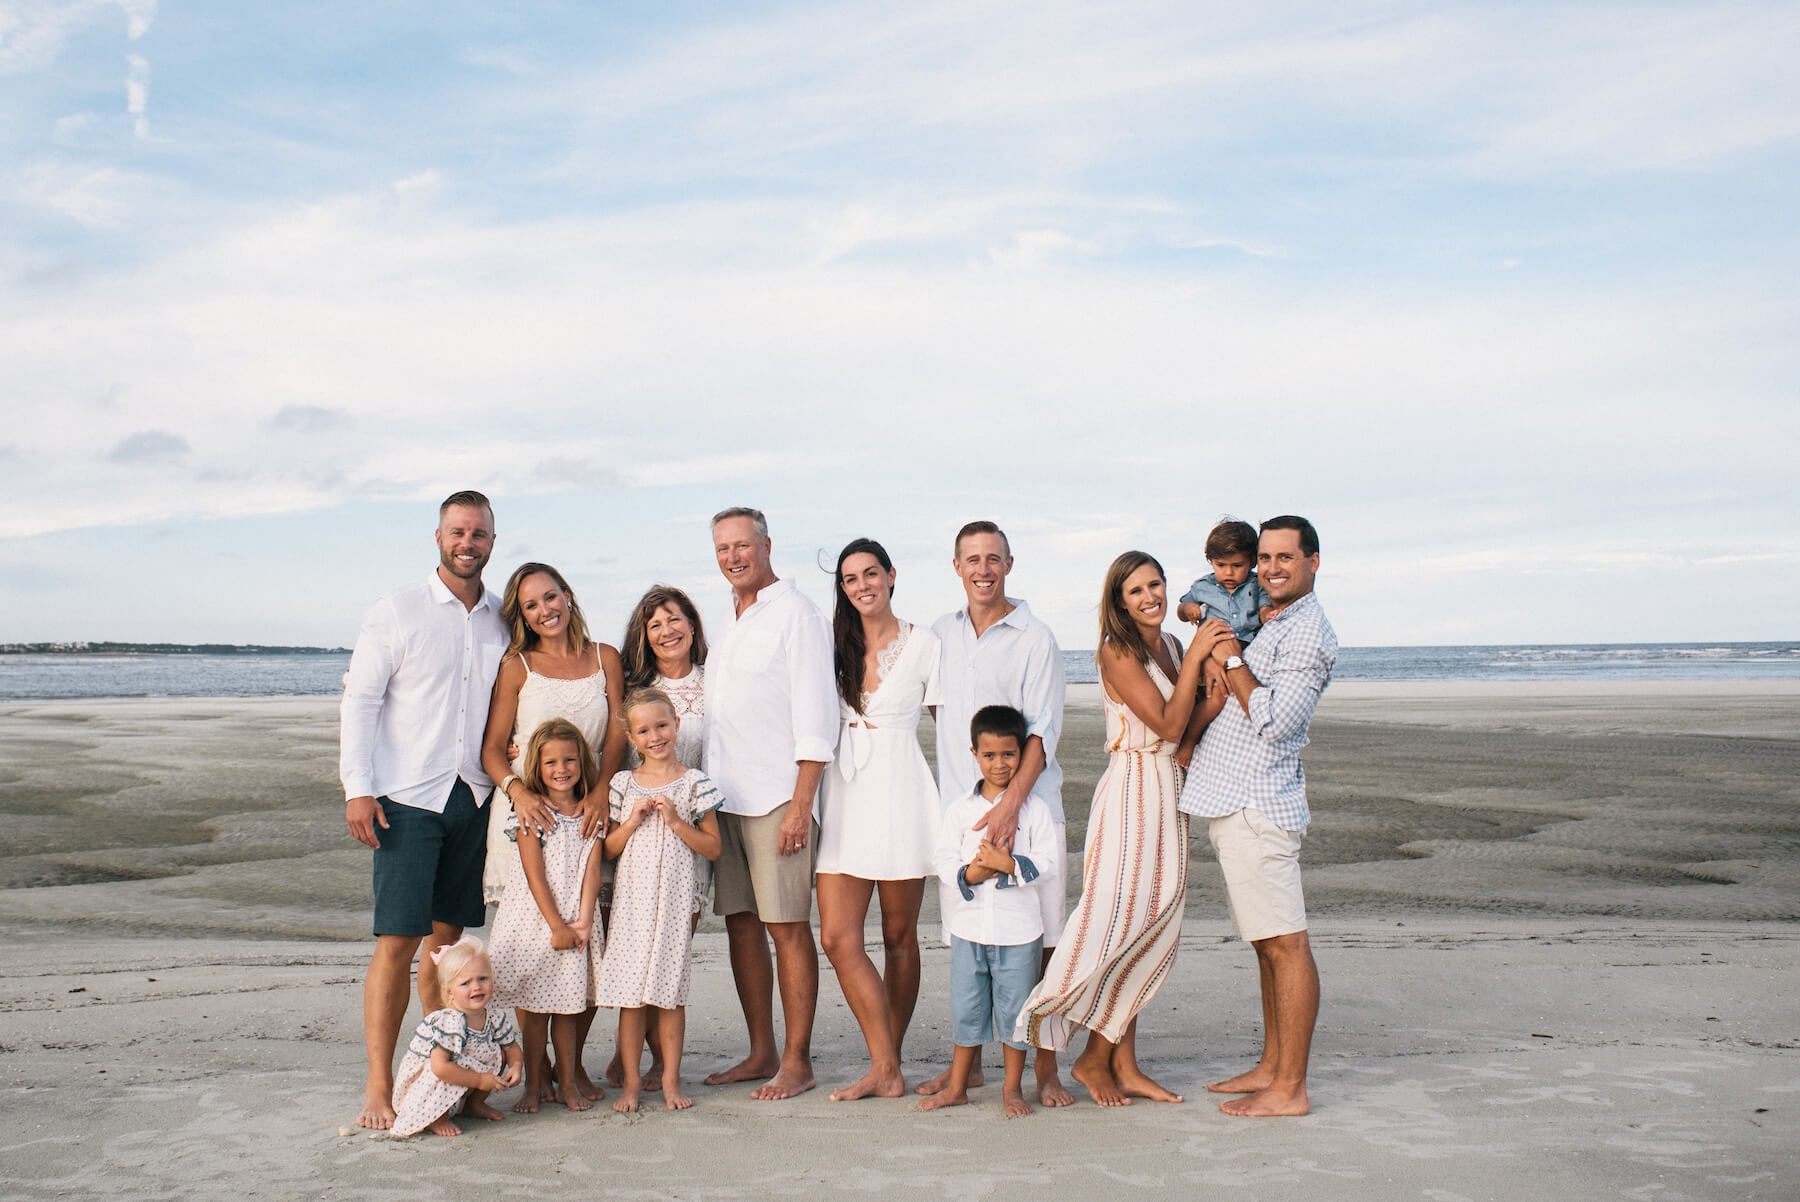 a multigenerational family standing on the beach Savannah, Georgia, United States of America